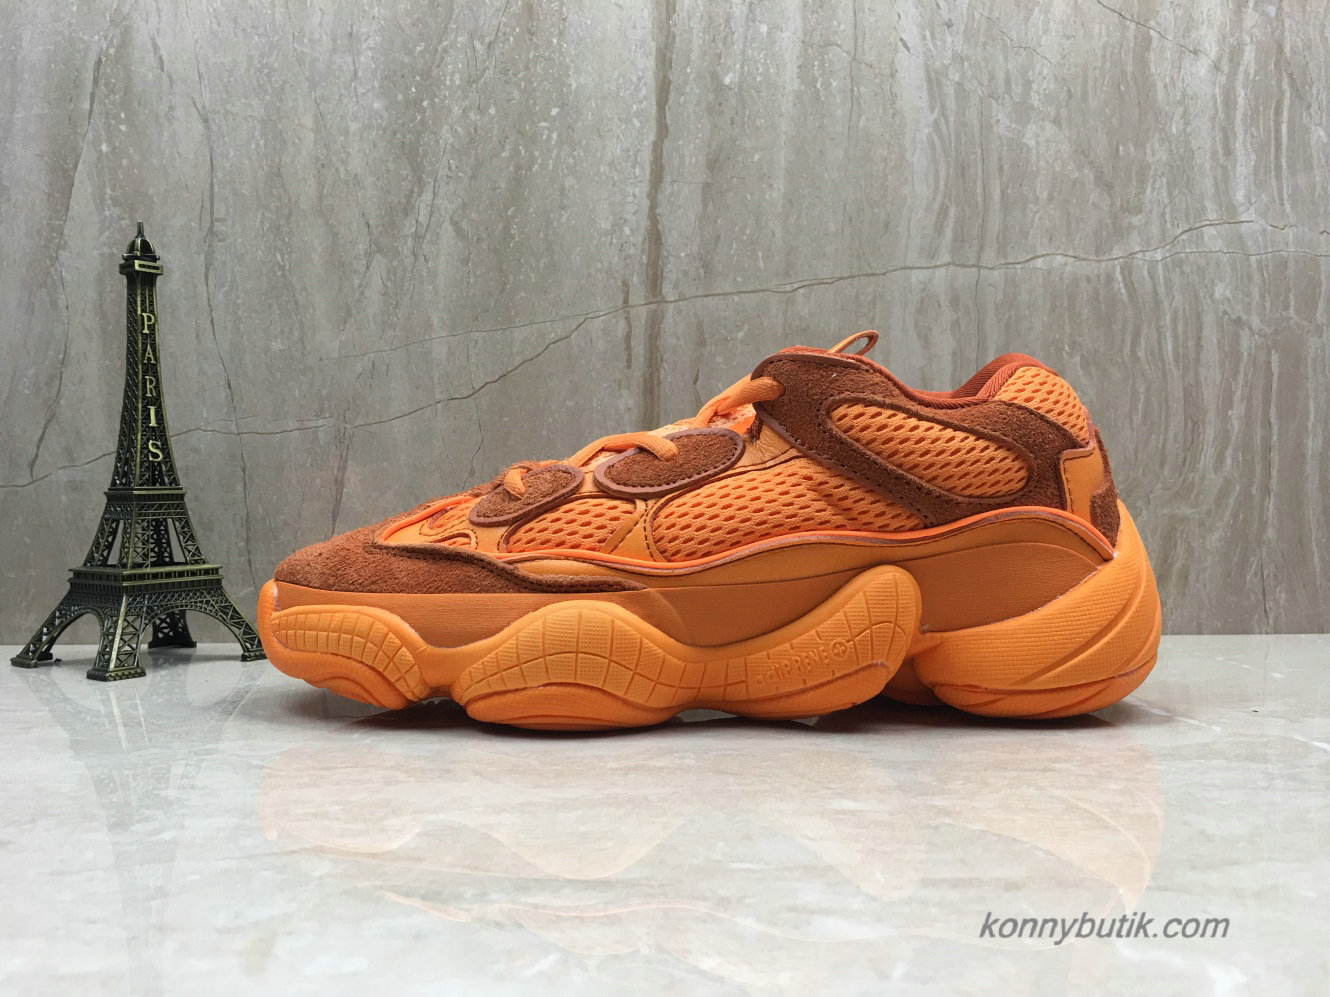 Adidas Yeezy Desert Rat 500 Blush Unisex Sko Orange (F36648)